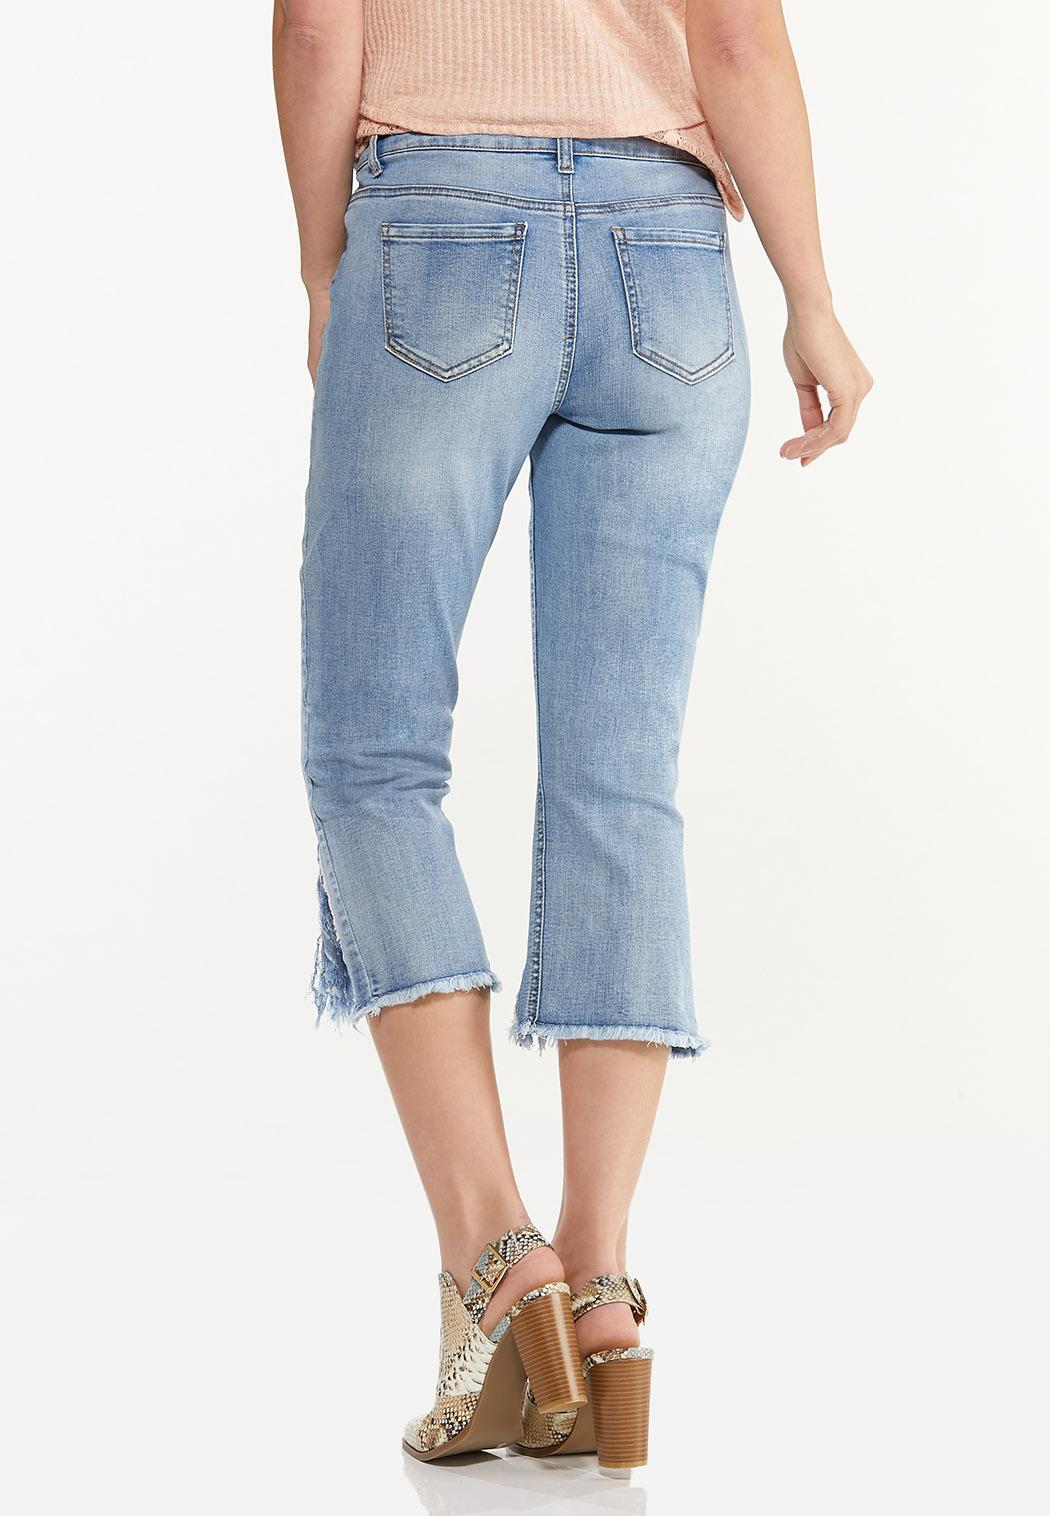 Twist Frayed Hem Cropped Jeans (Item #44513856)